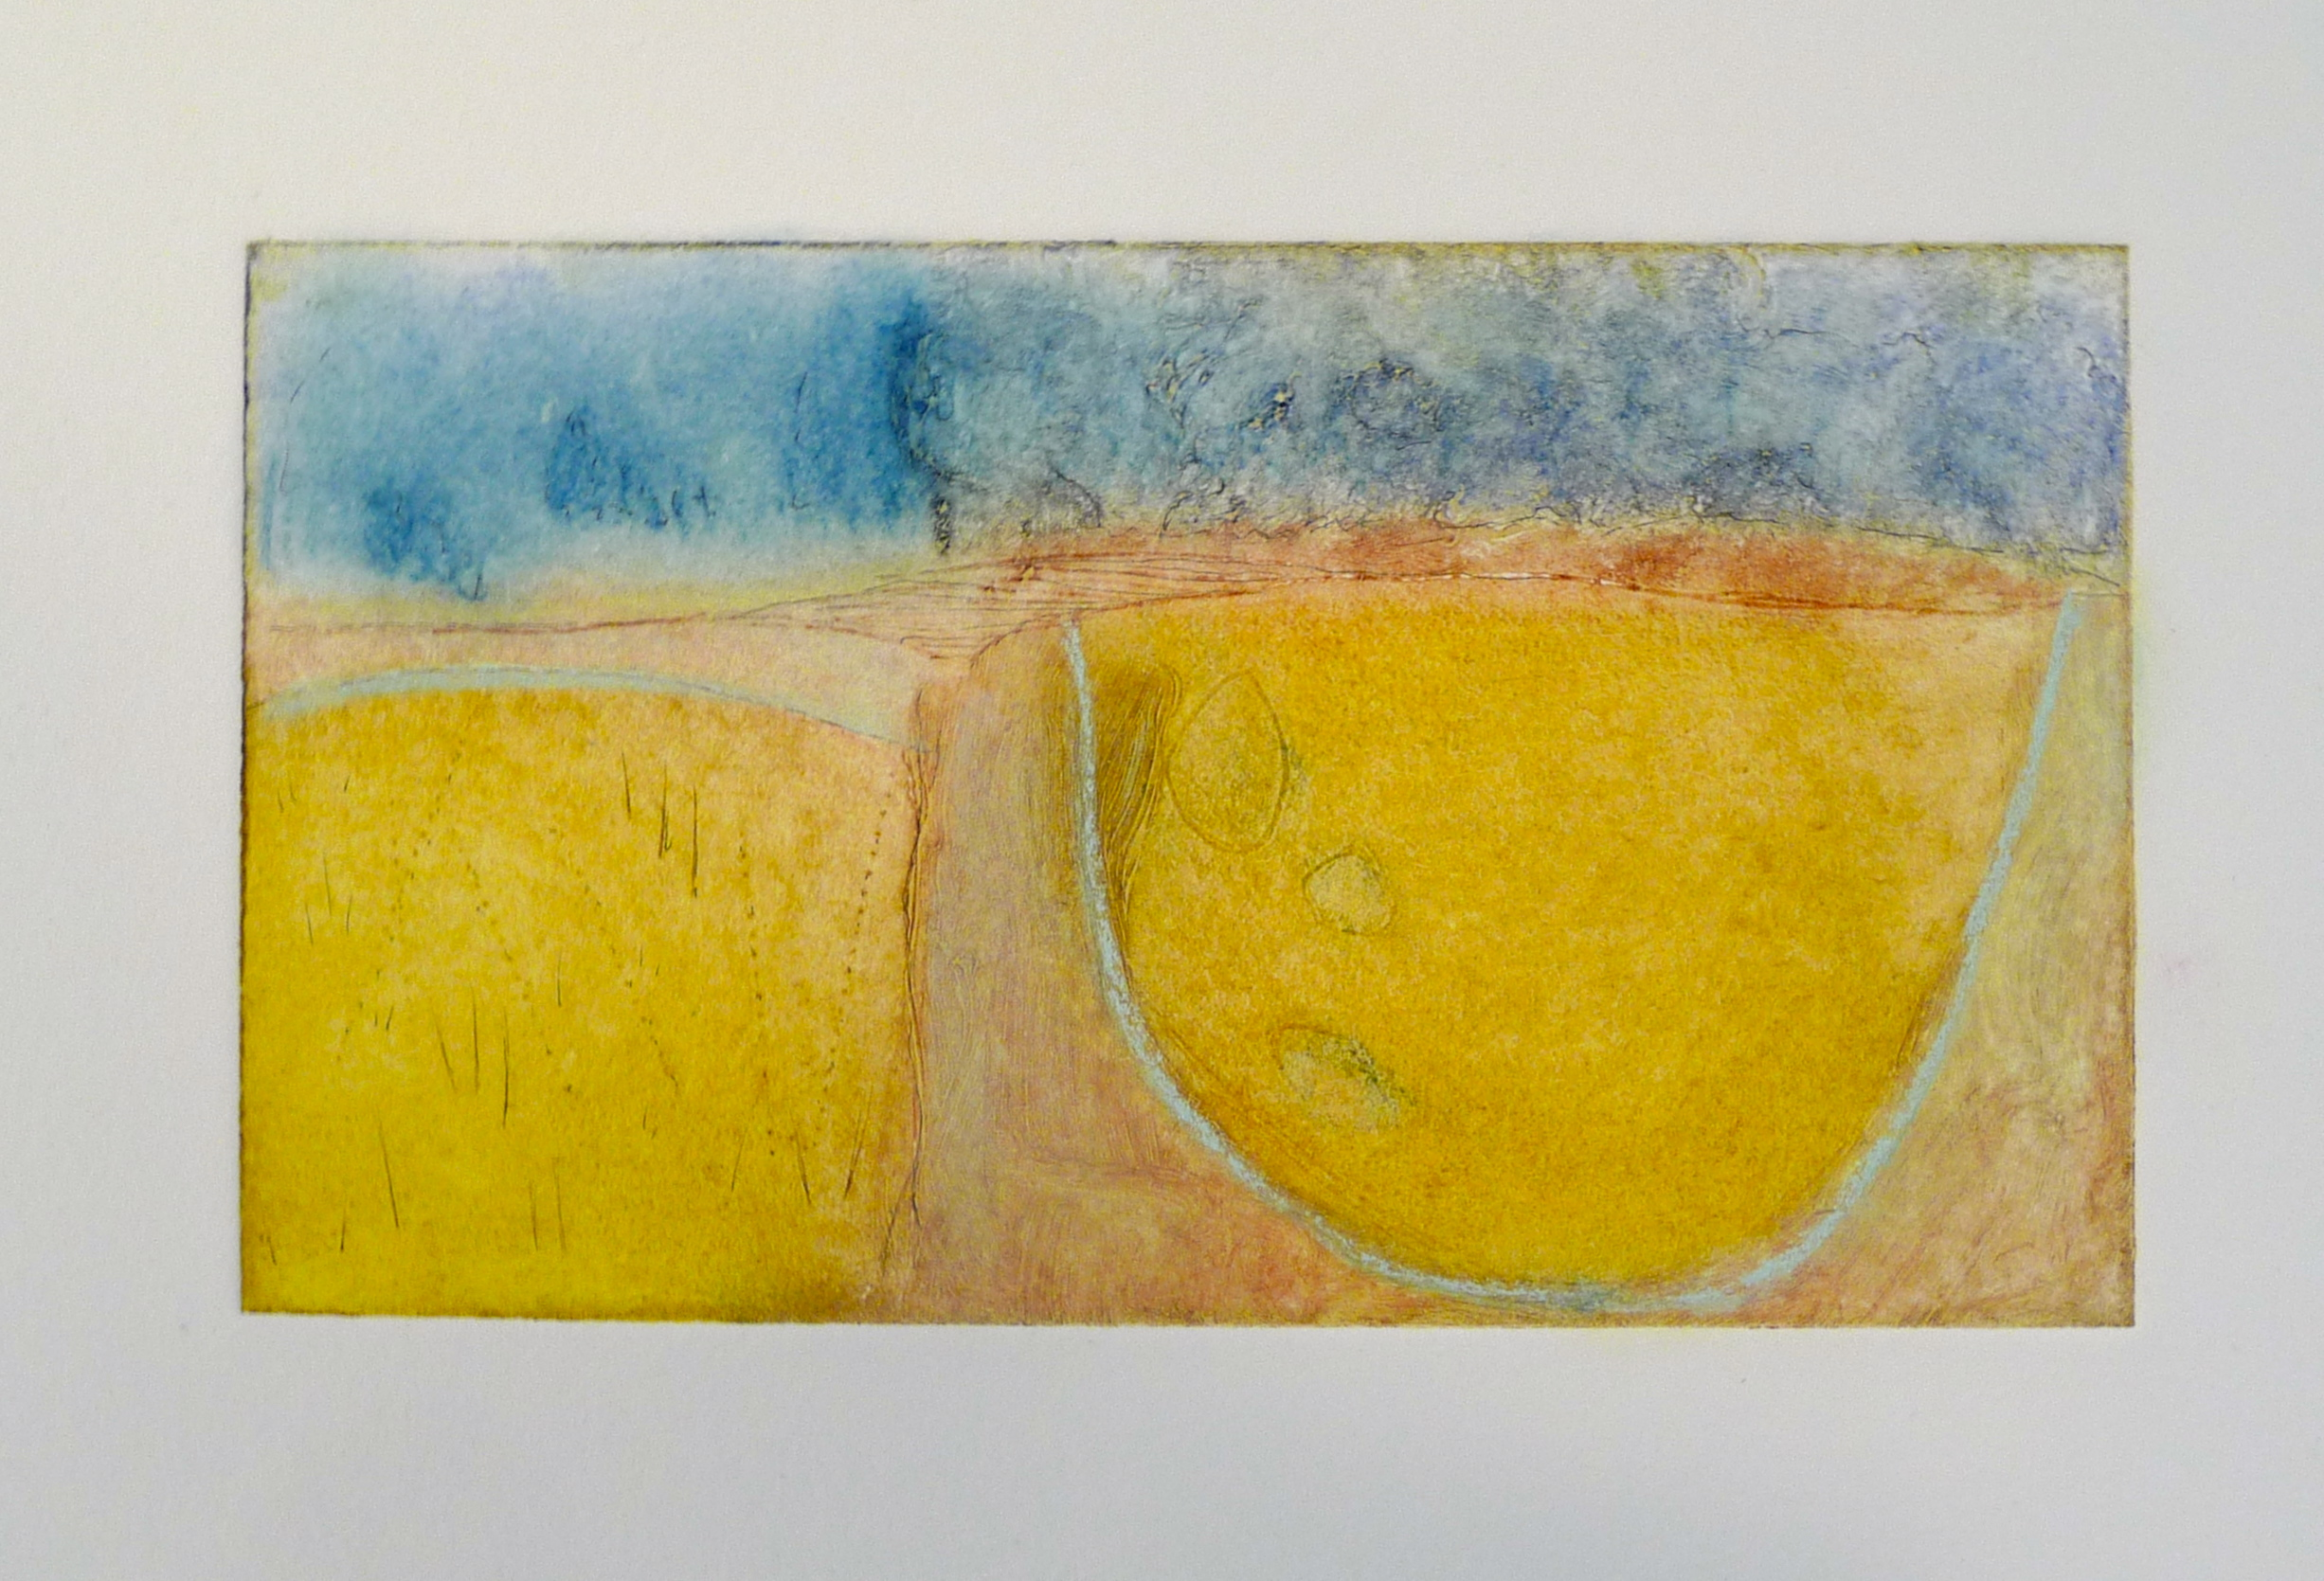 Indigo Basin; monotype